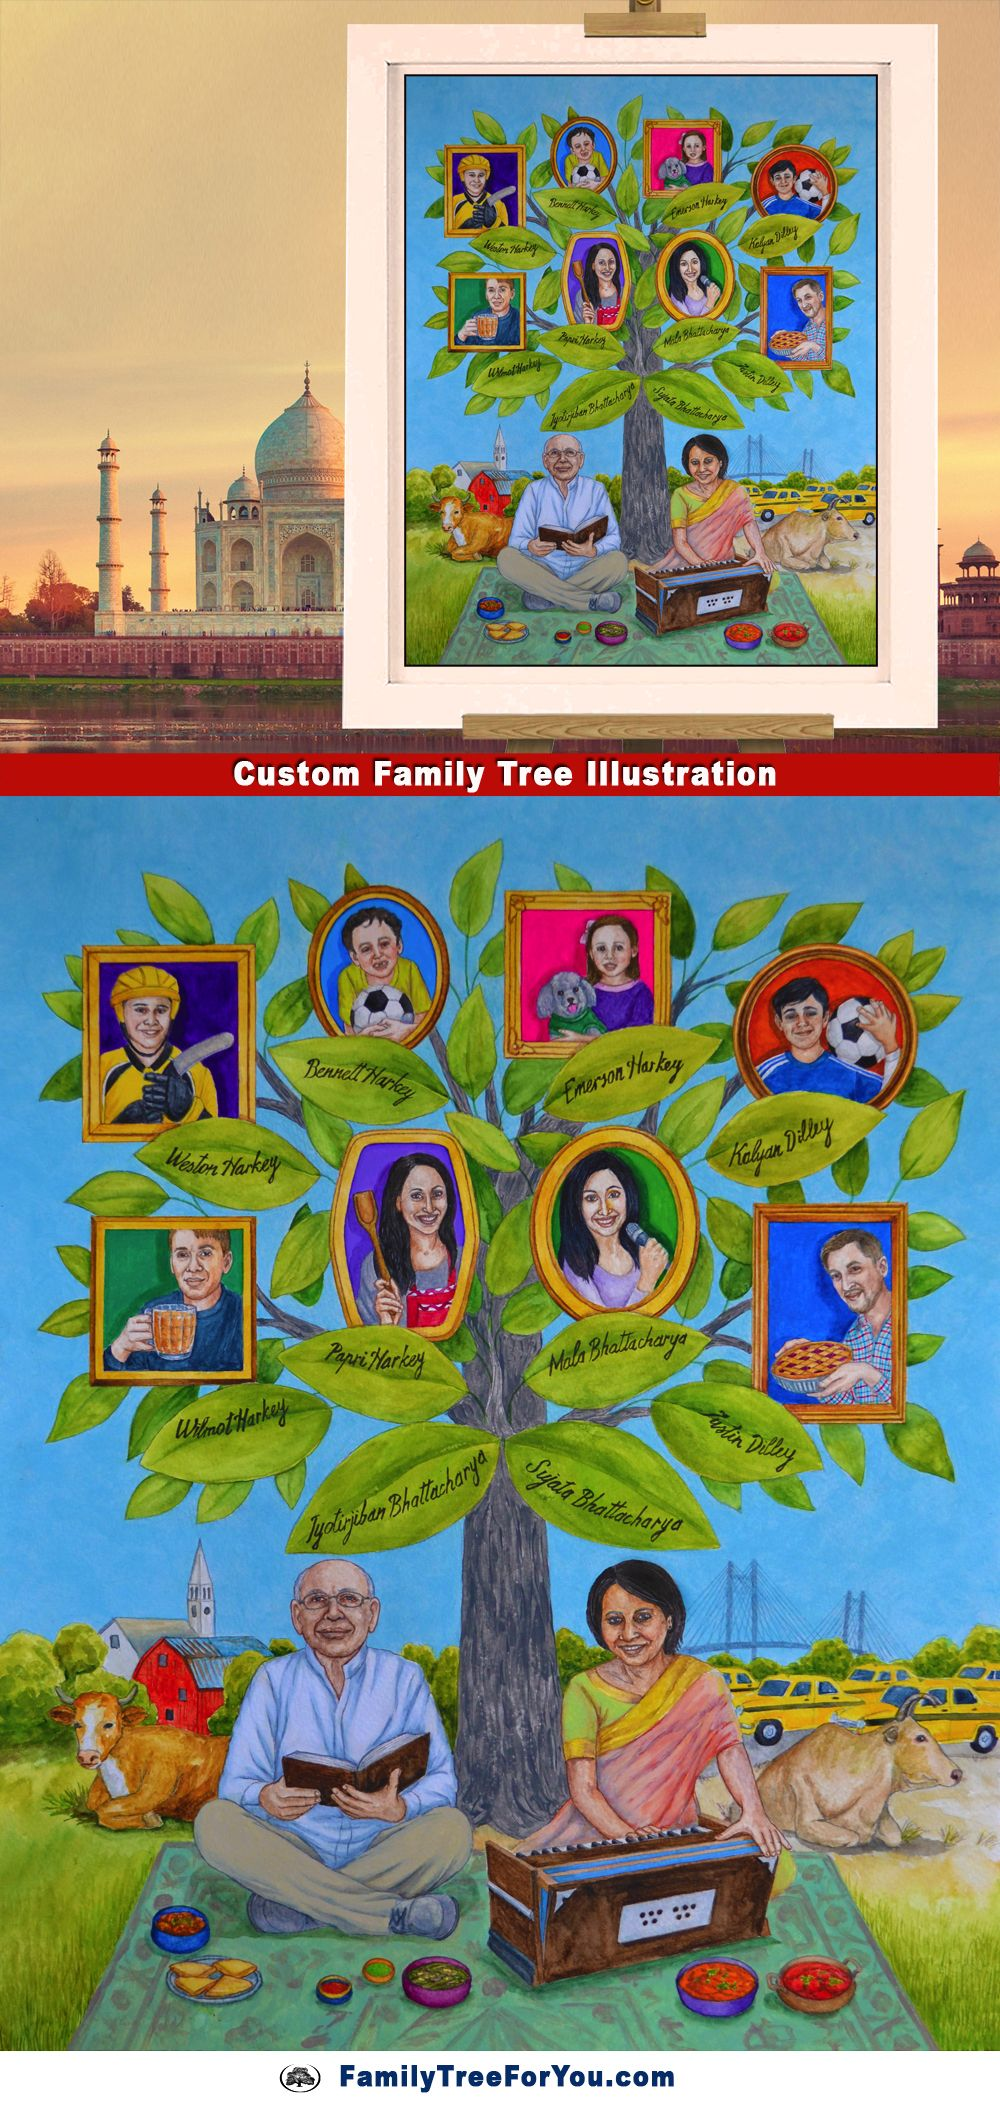 Family tree personalized with details about the family's